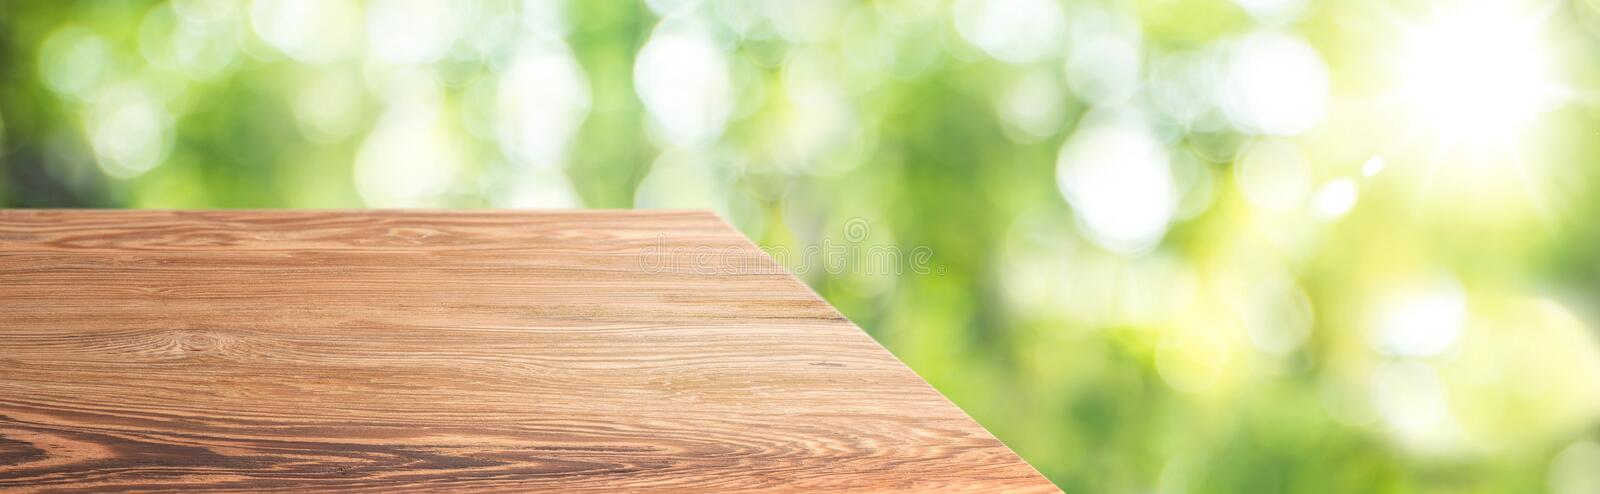 Wood table top product display background with blur nature garden.left perspective wooden kitchen counter with green leaf and stock photo